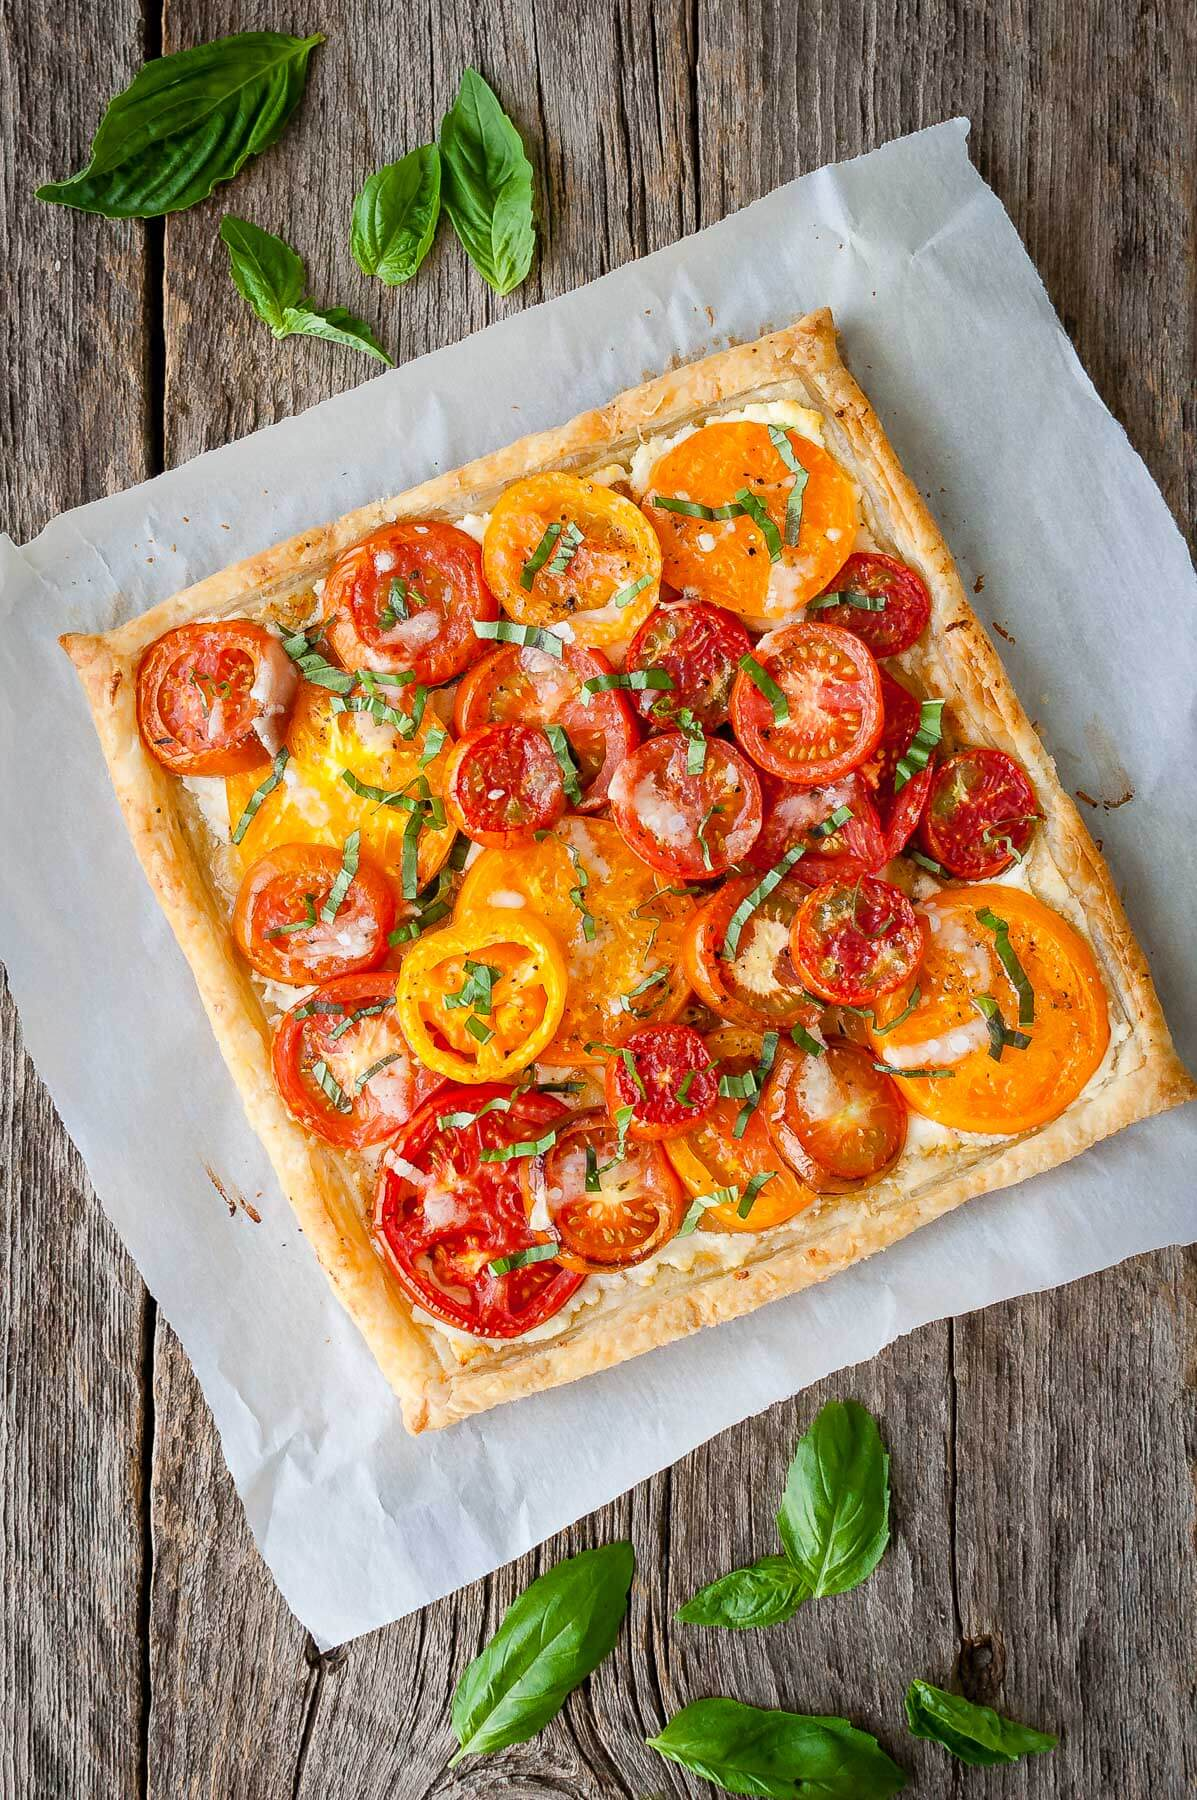 Tomato tart with goat cheese and caramelized onions on a piece of parchment paper with loose basil leaves.